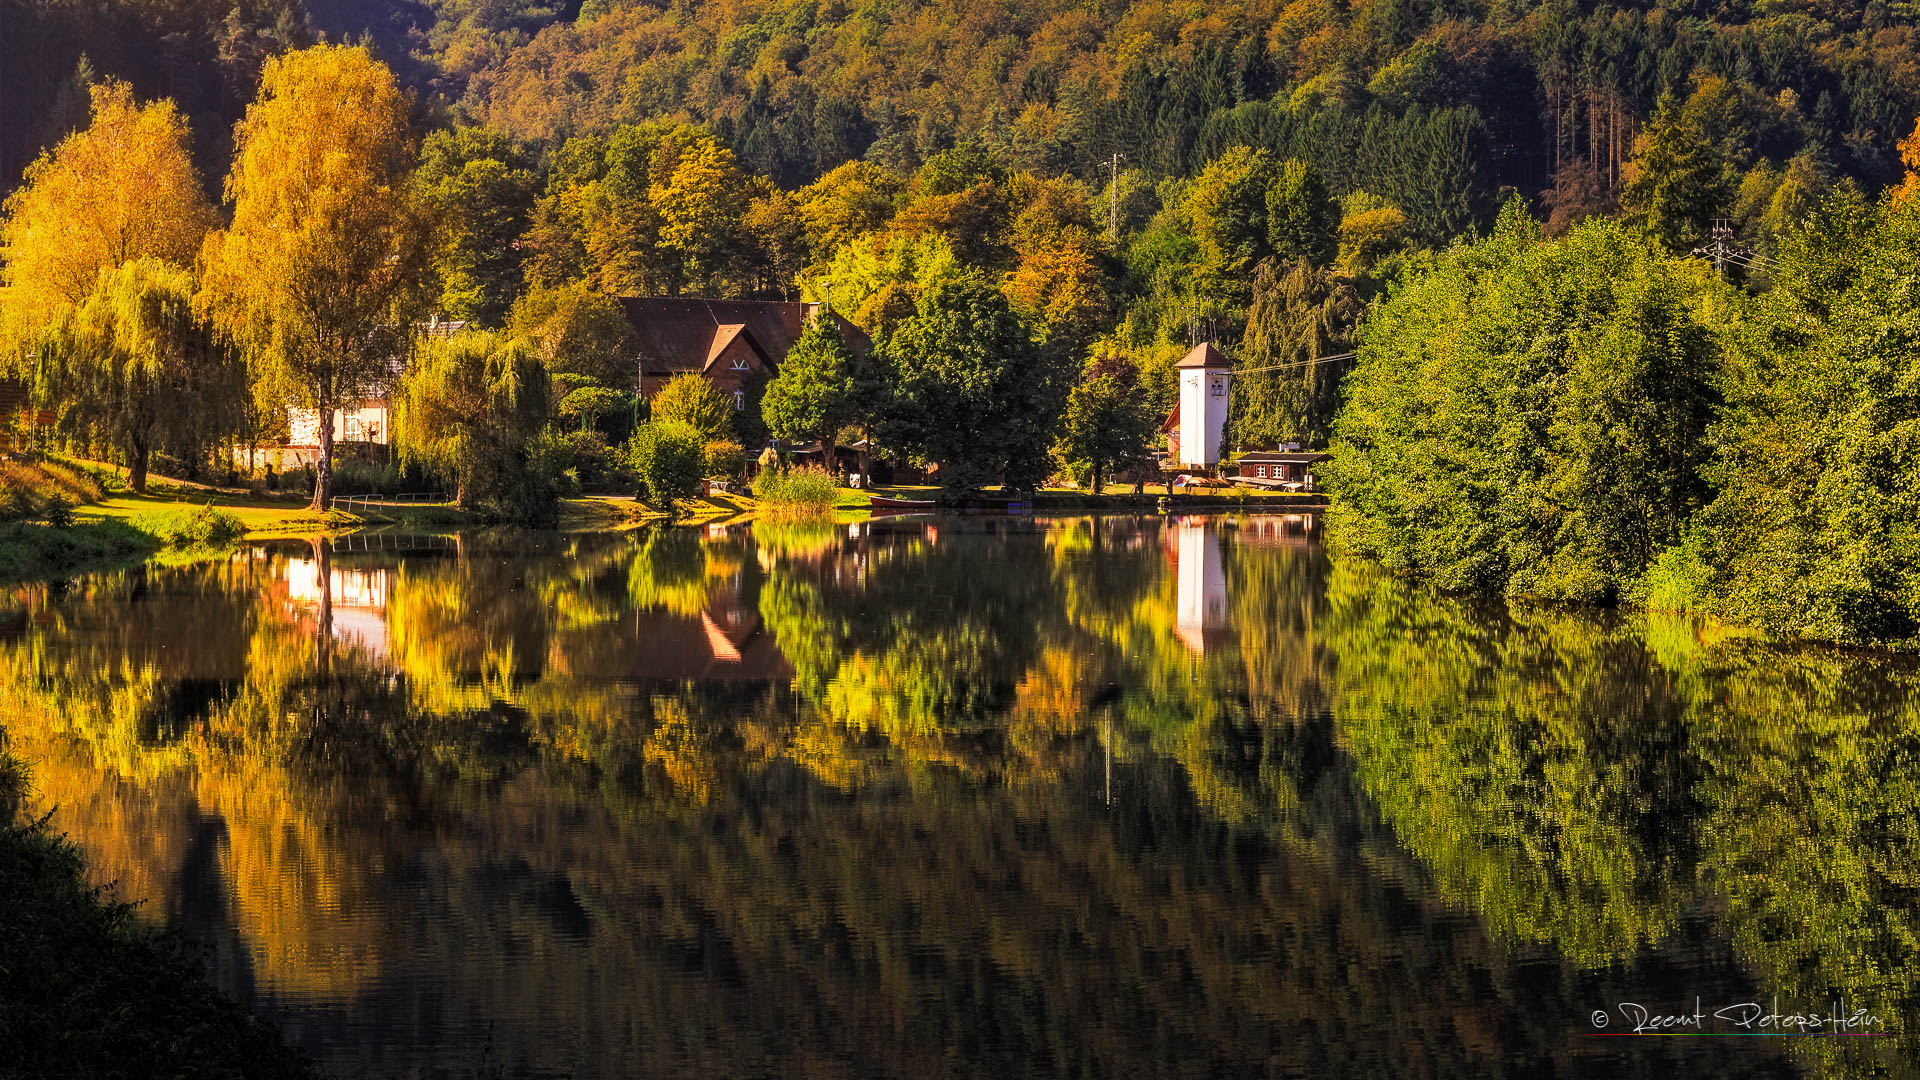 Reflections on Königsweiher, Germany